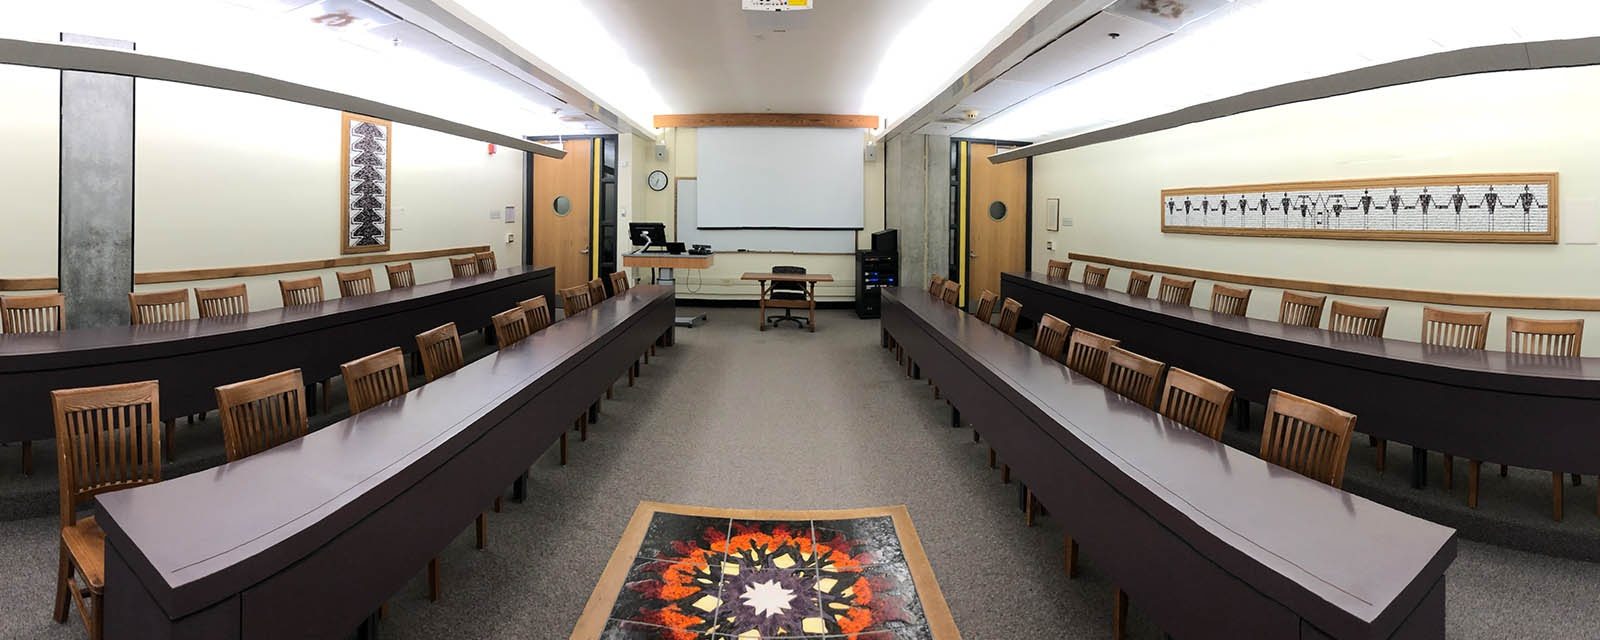 Panorama of Eggers 018 from rear of room, chairs moveable on stationary desks, teaching station front right